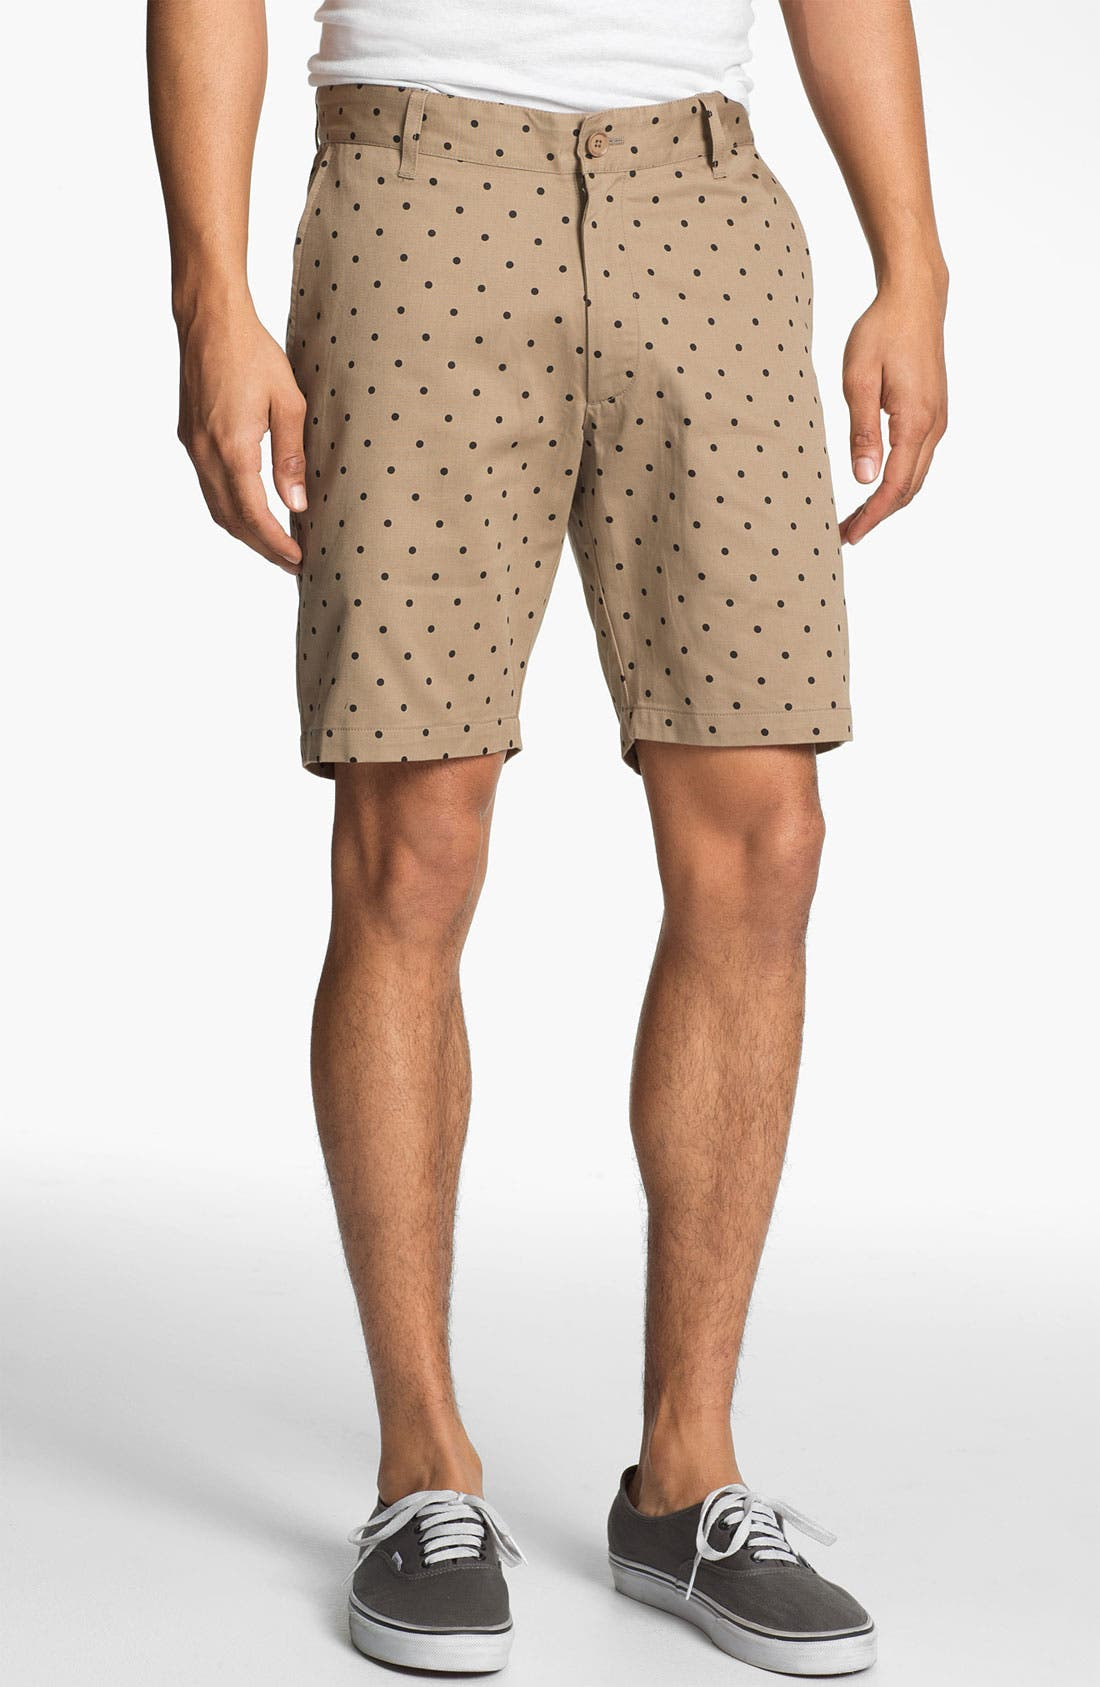 Alternate Image 1 Selected - Stussy Deluxe 'Gramps' Polka Dot Shorts